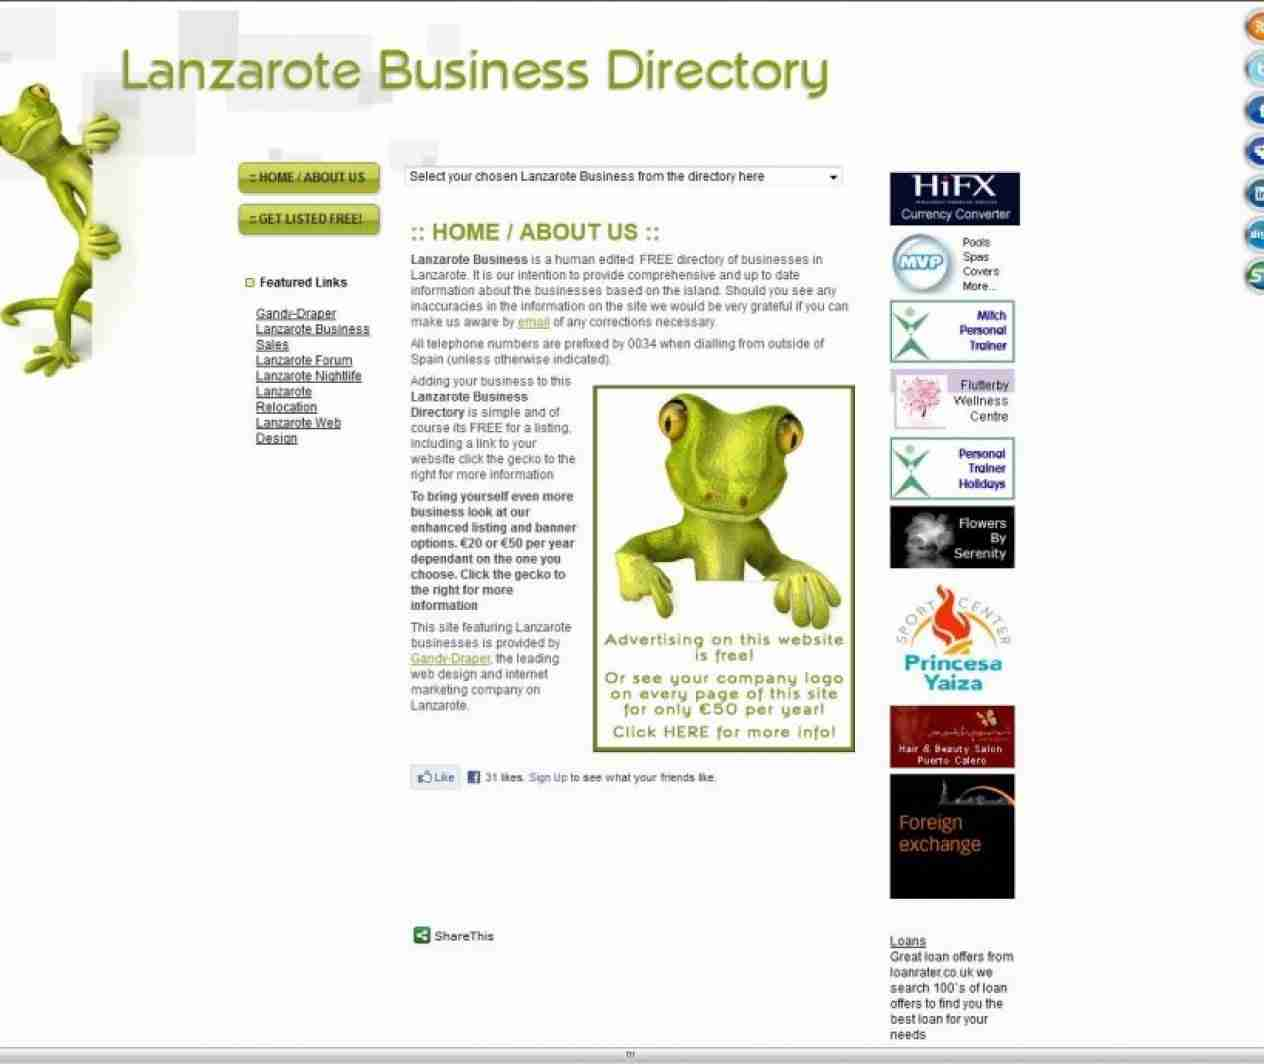 Lanzarote Business